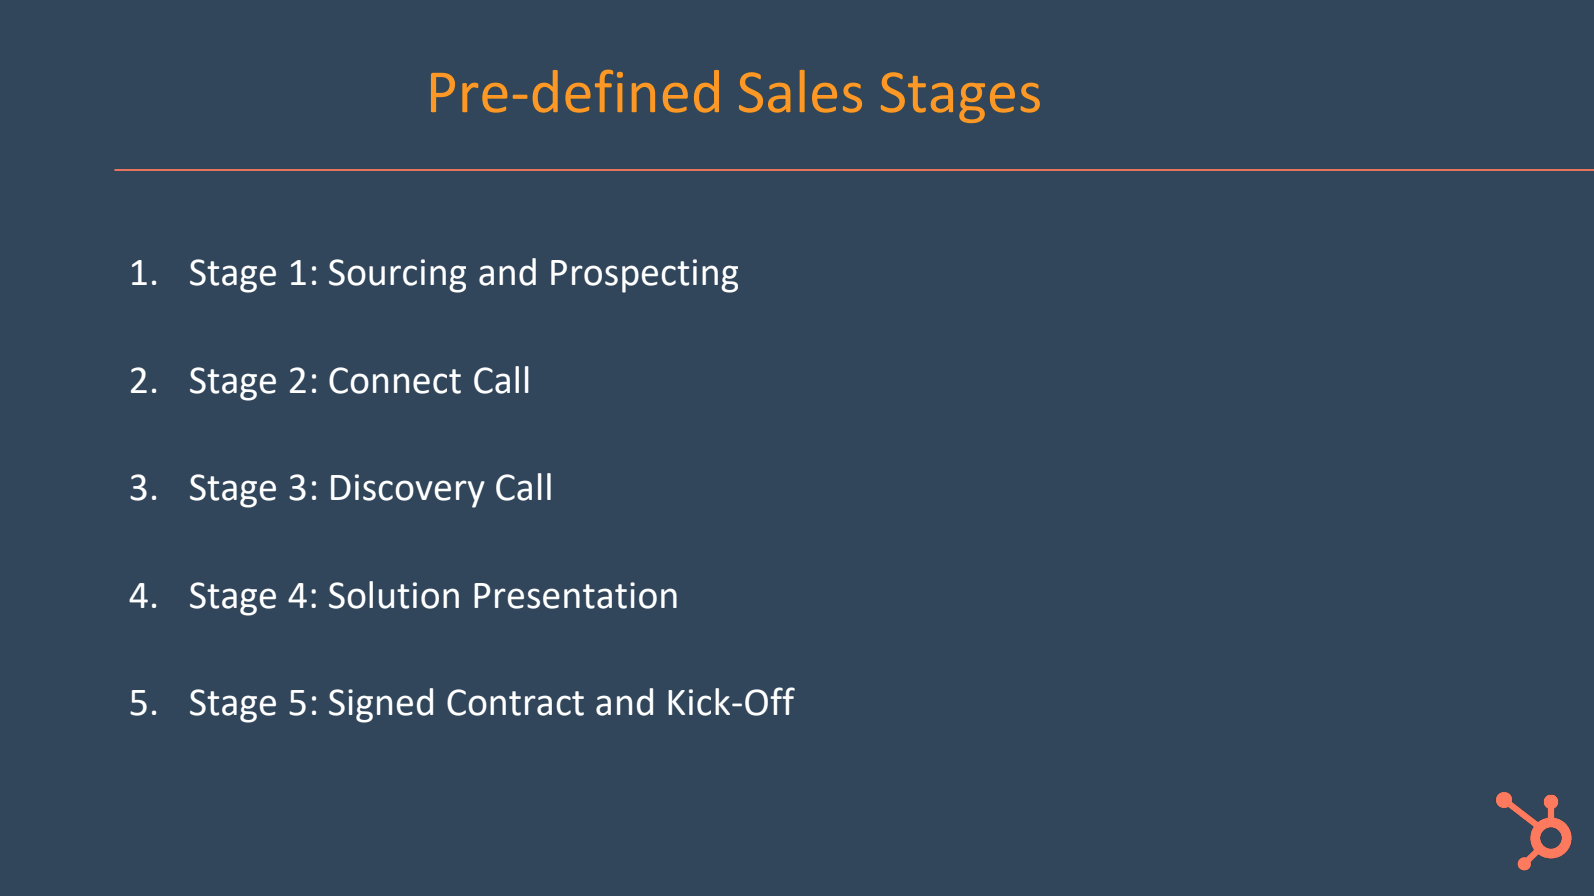 Pre-defined sales stages